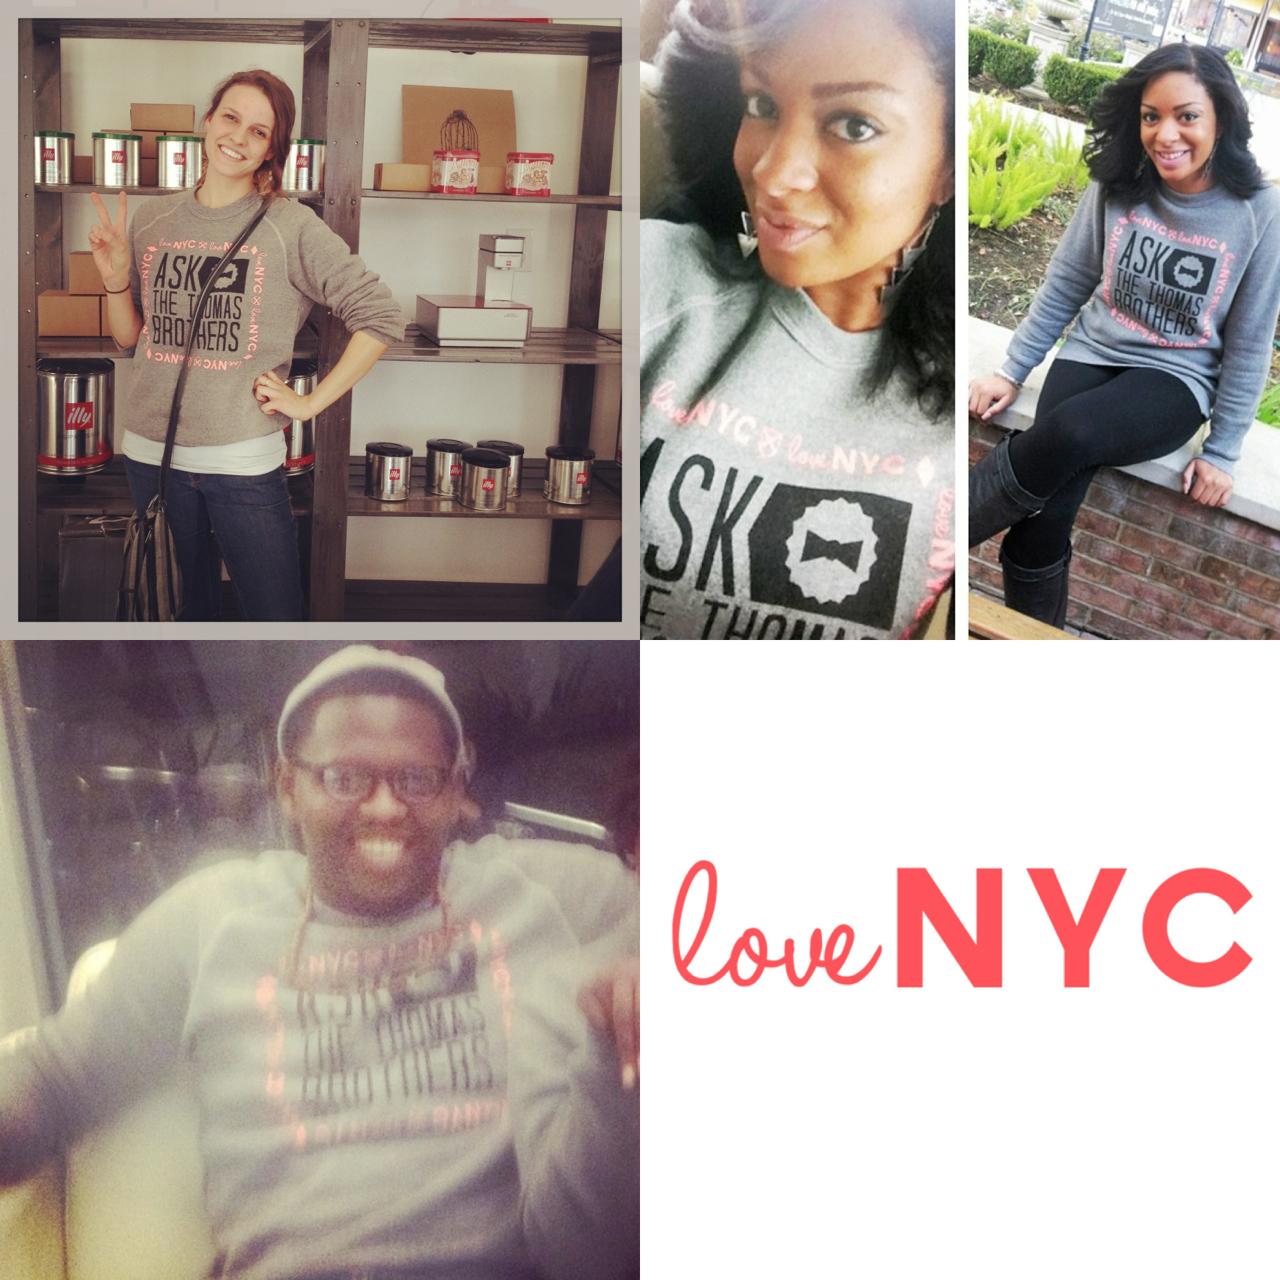 Send us a pic of you in your 'loveNYC' sweatshirt or tee & we'll put you on here! These are some we've gotten today